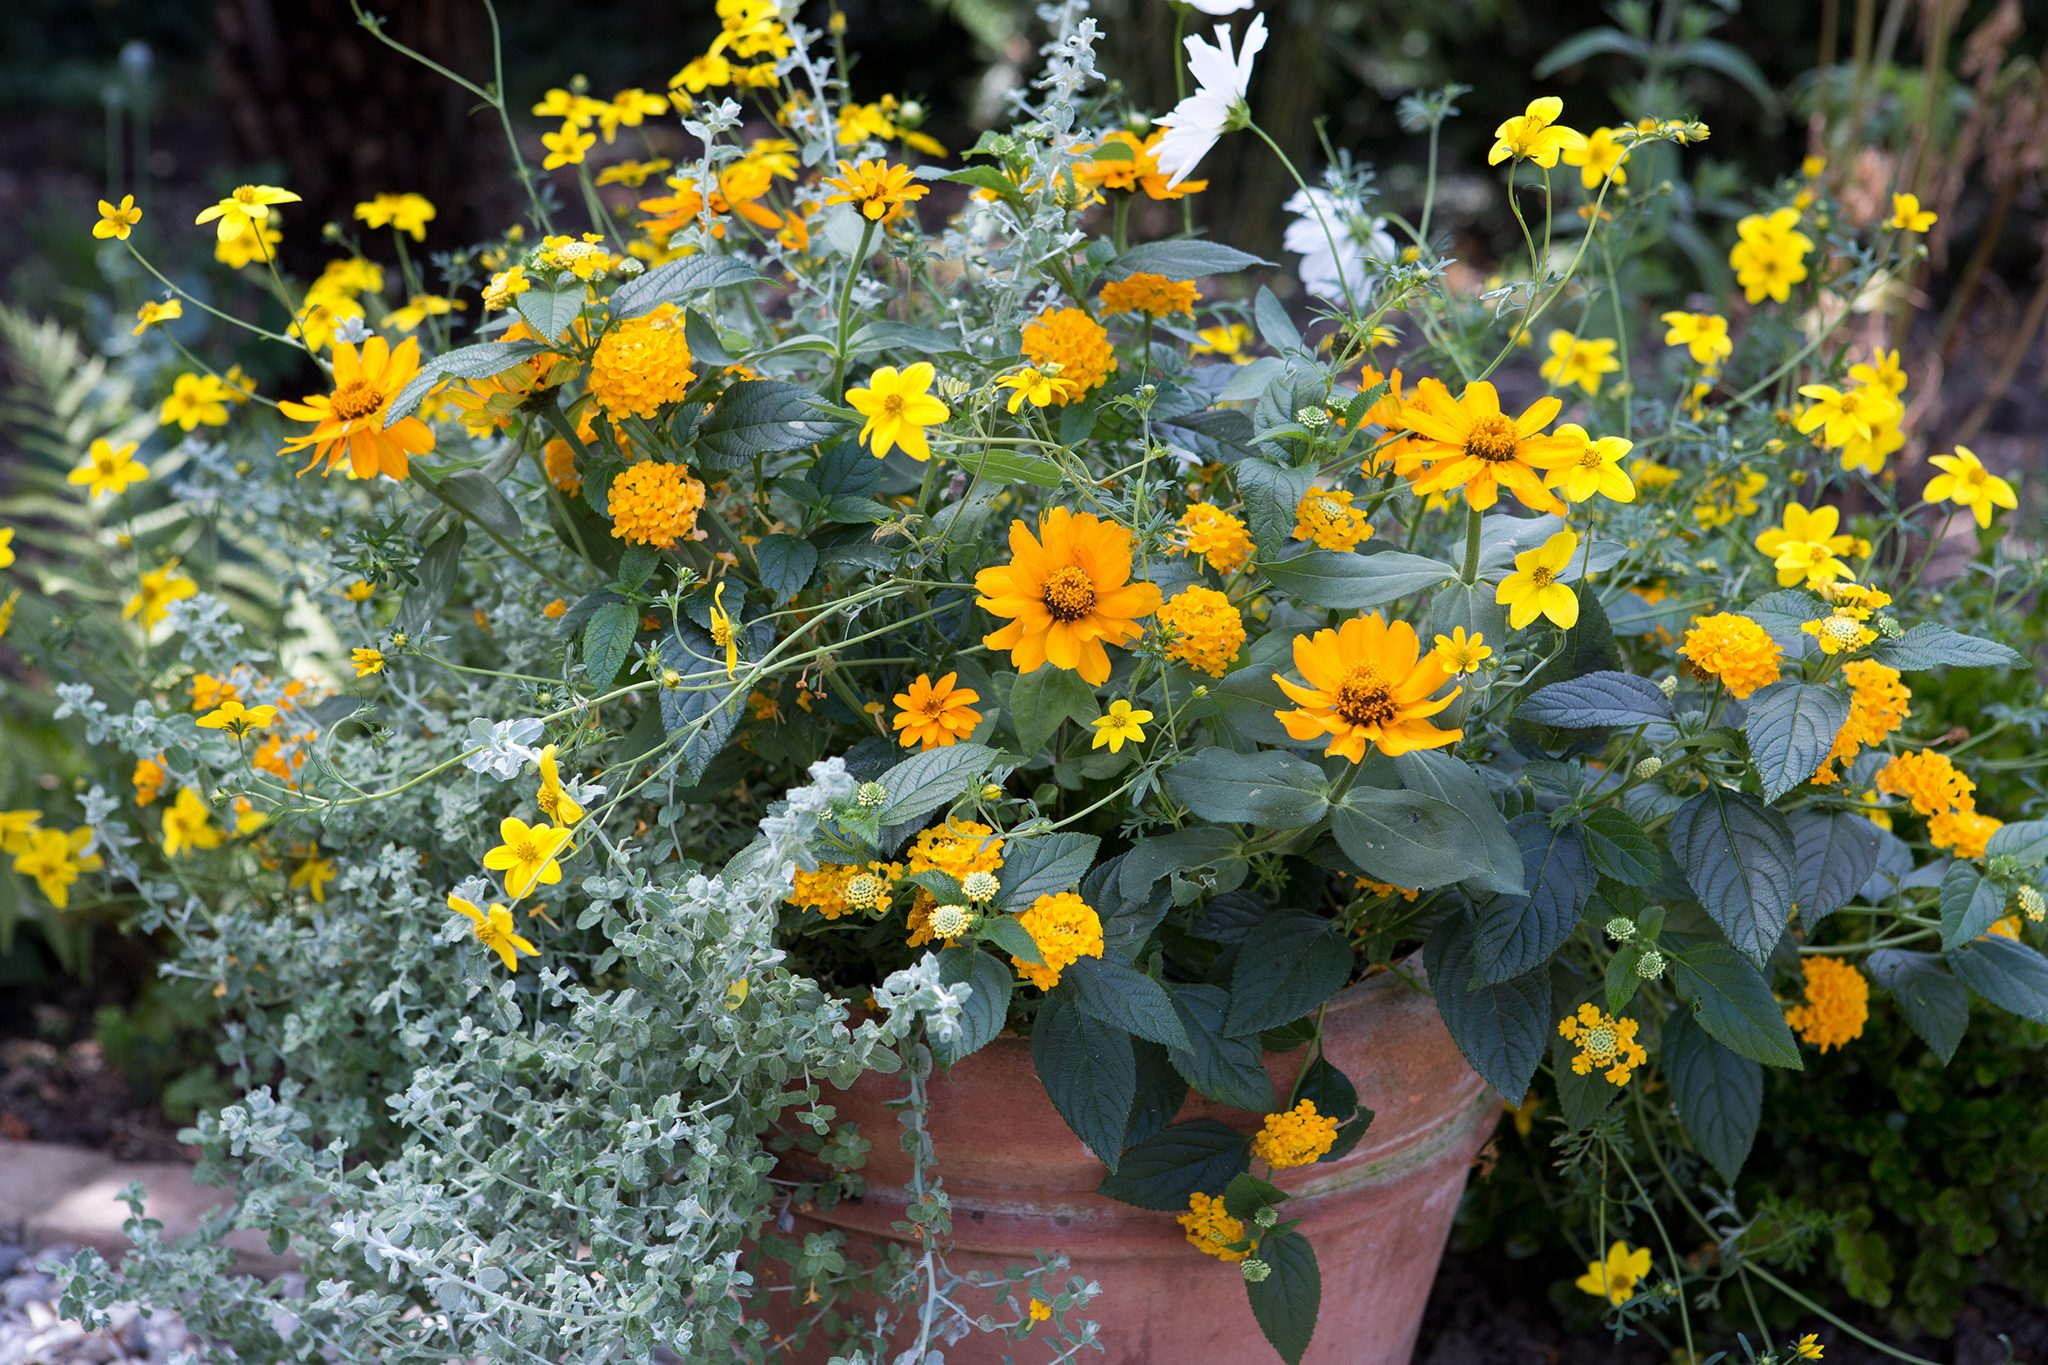 Top 10 plants for containers : plants for flower pots - startupinsights.org